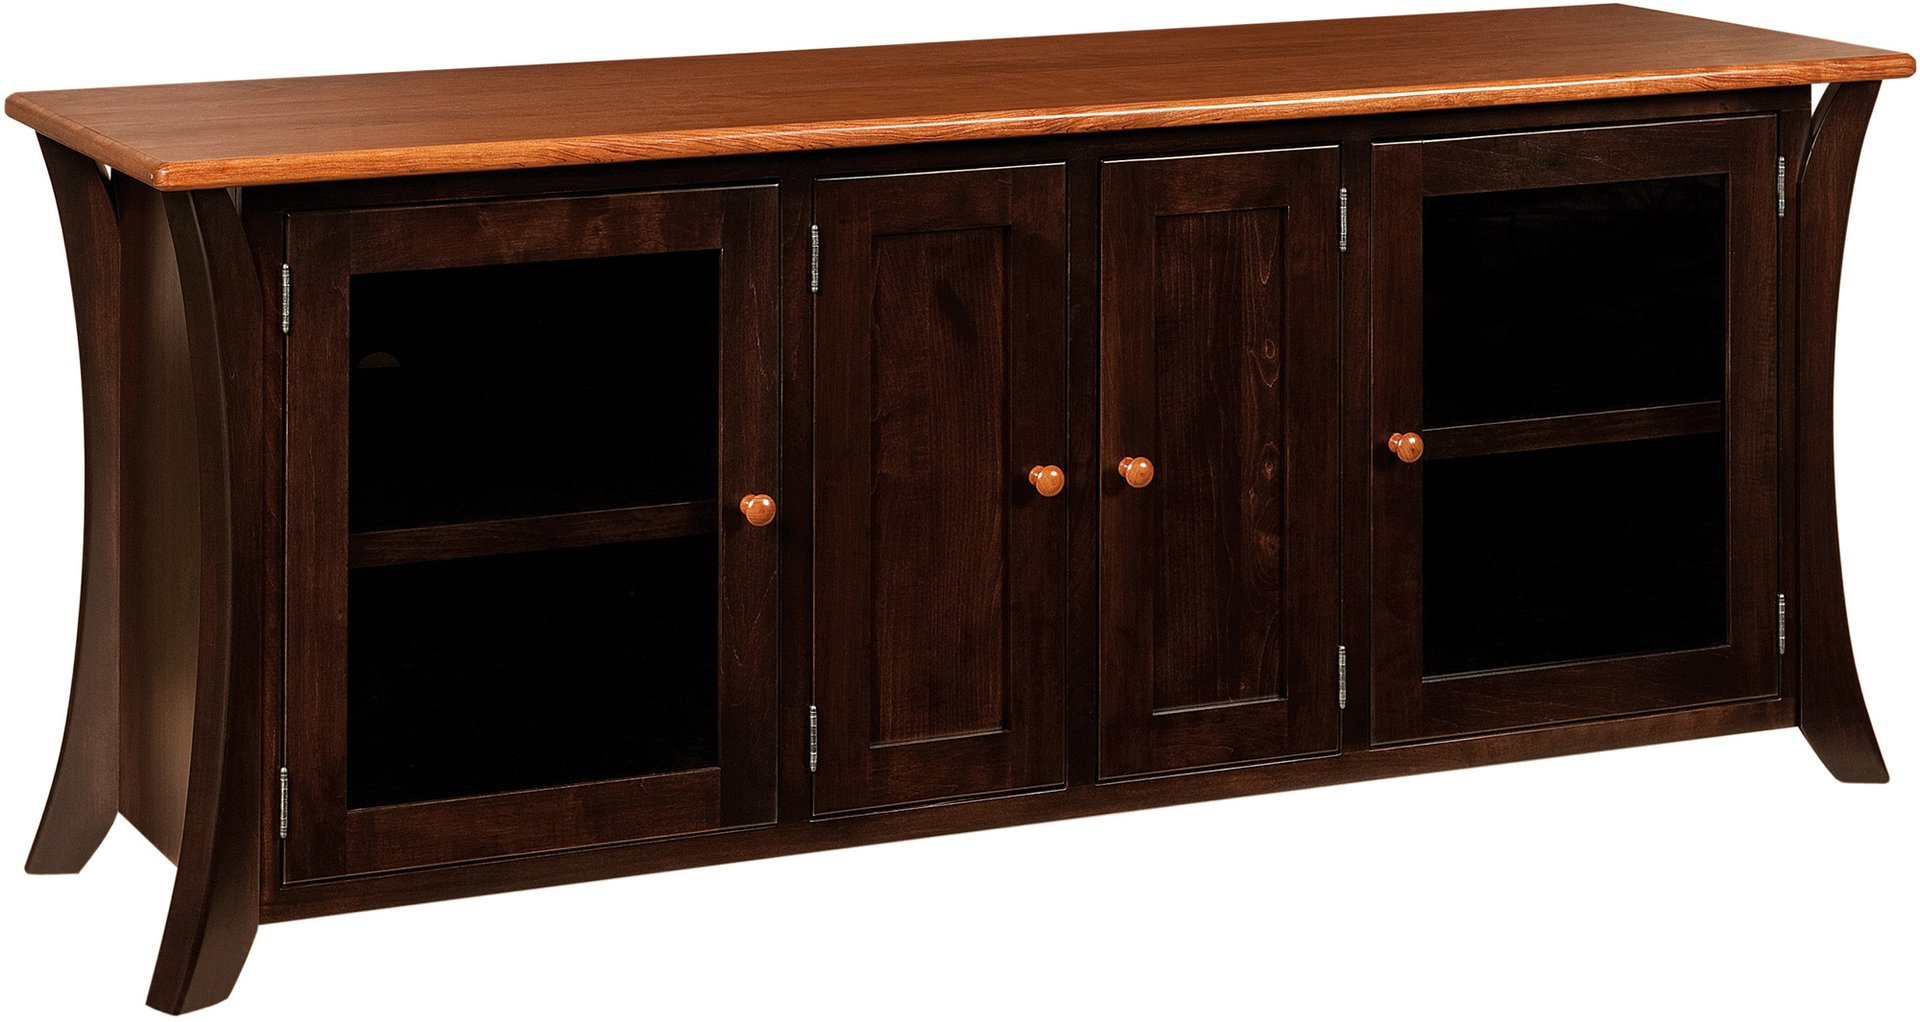 Caledonia TV Cabinet Collection